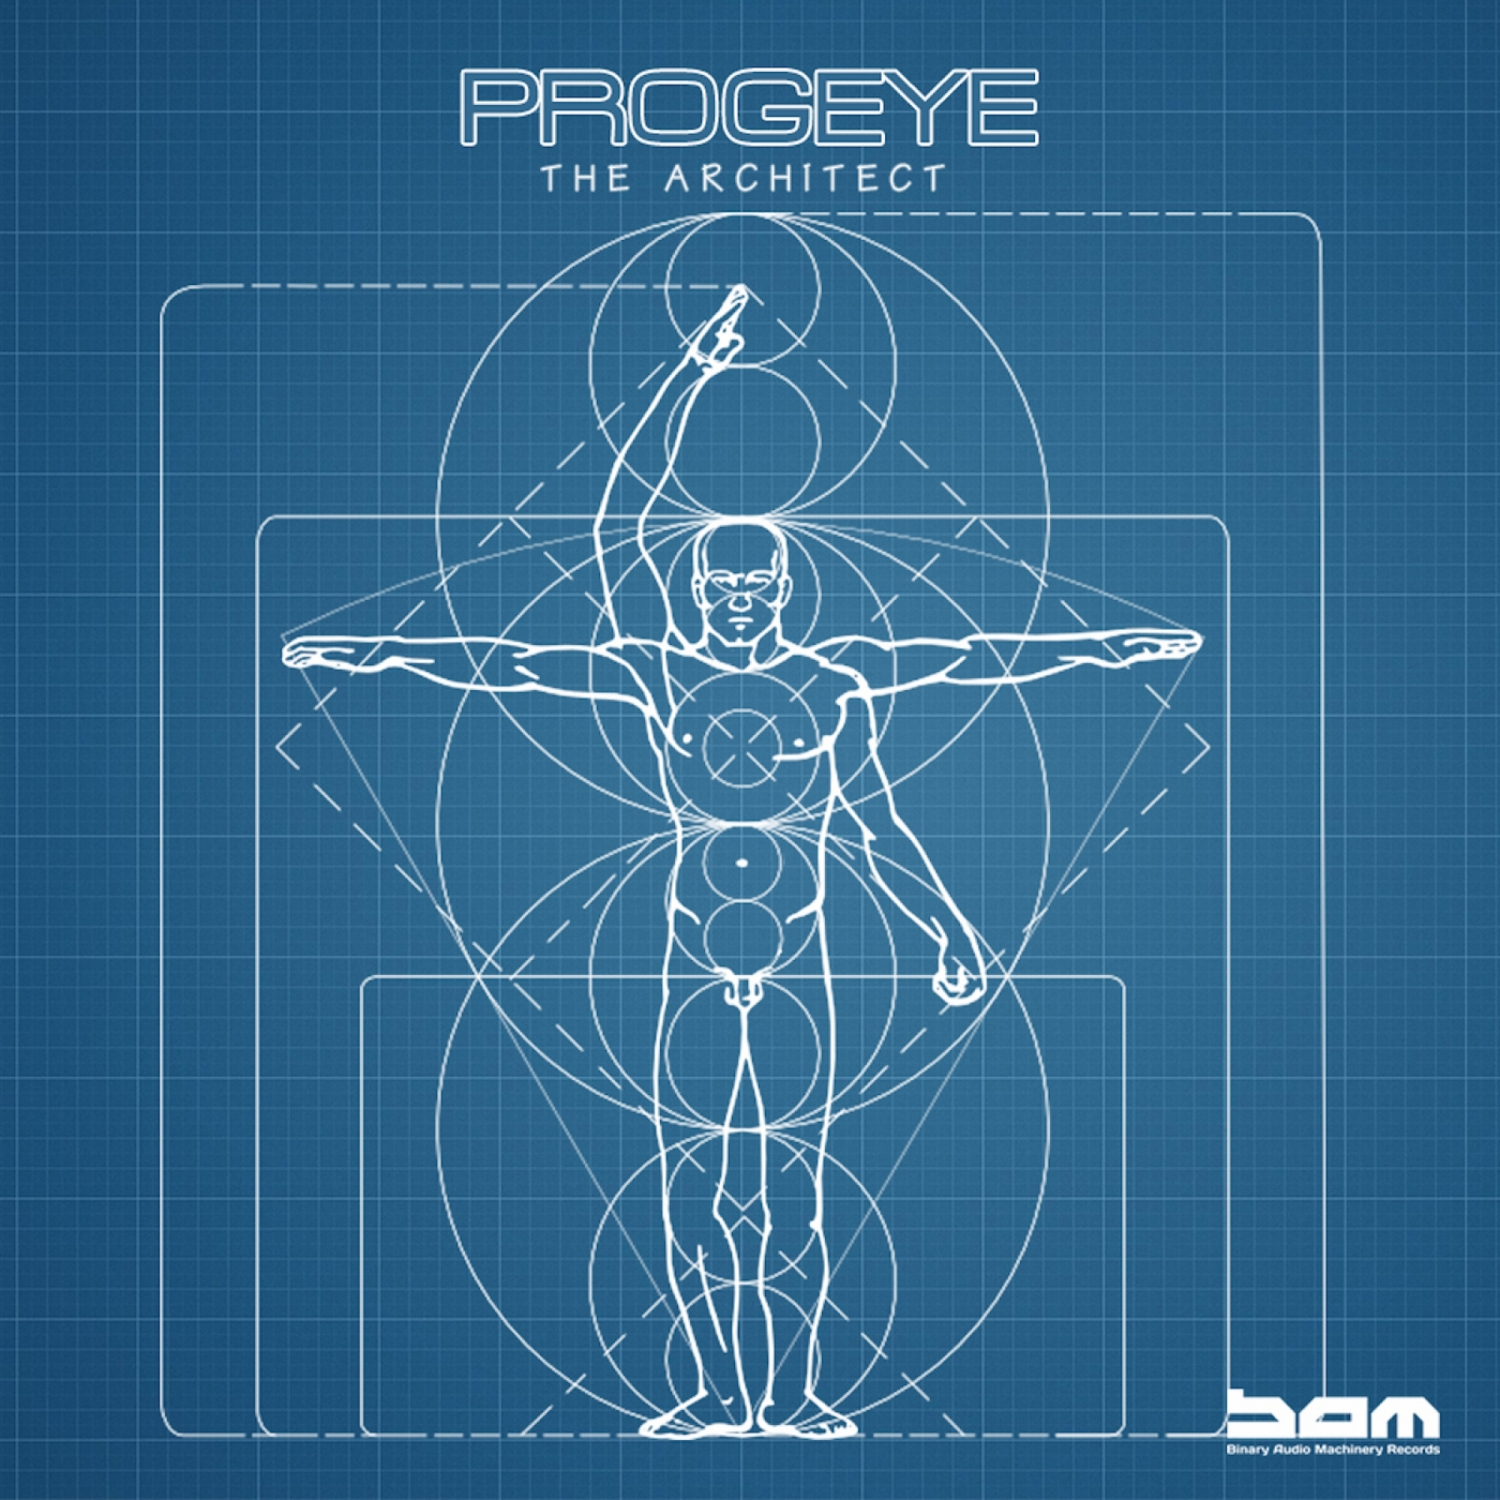 Progeye - The Architect (Original Mix)